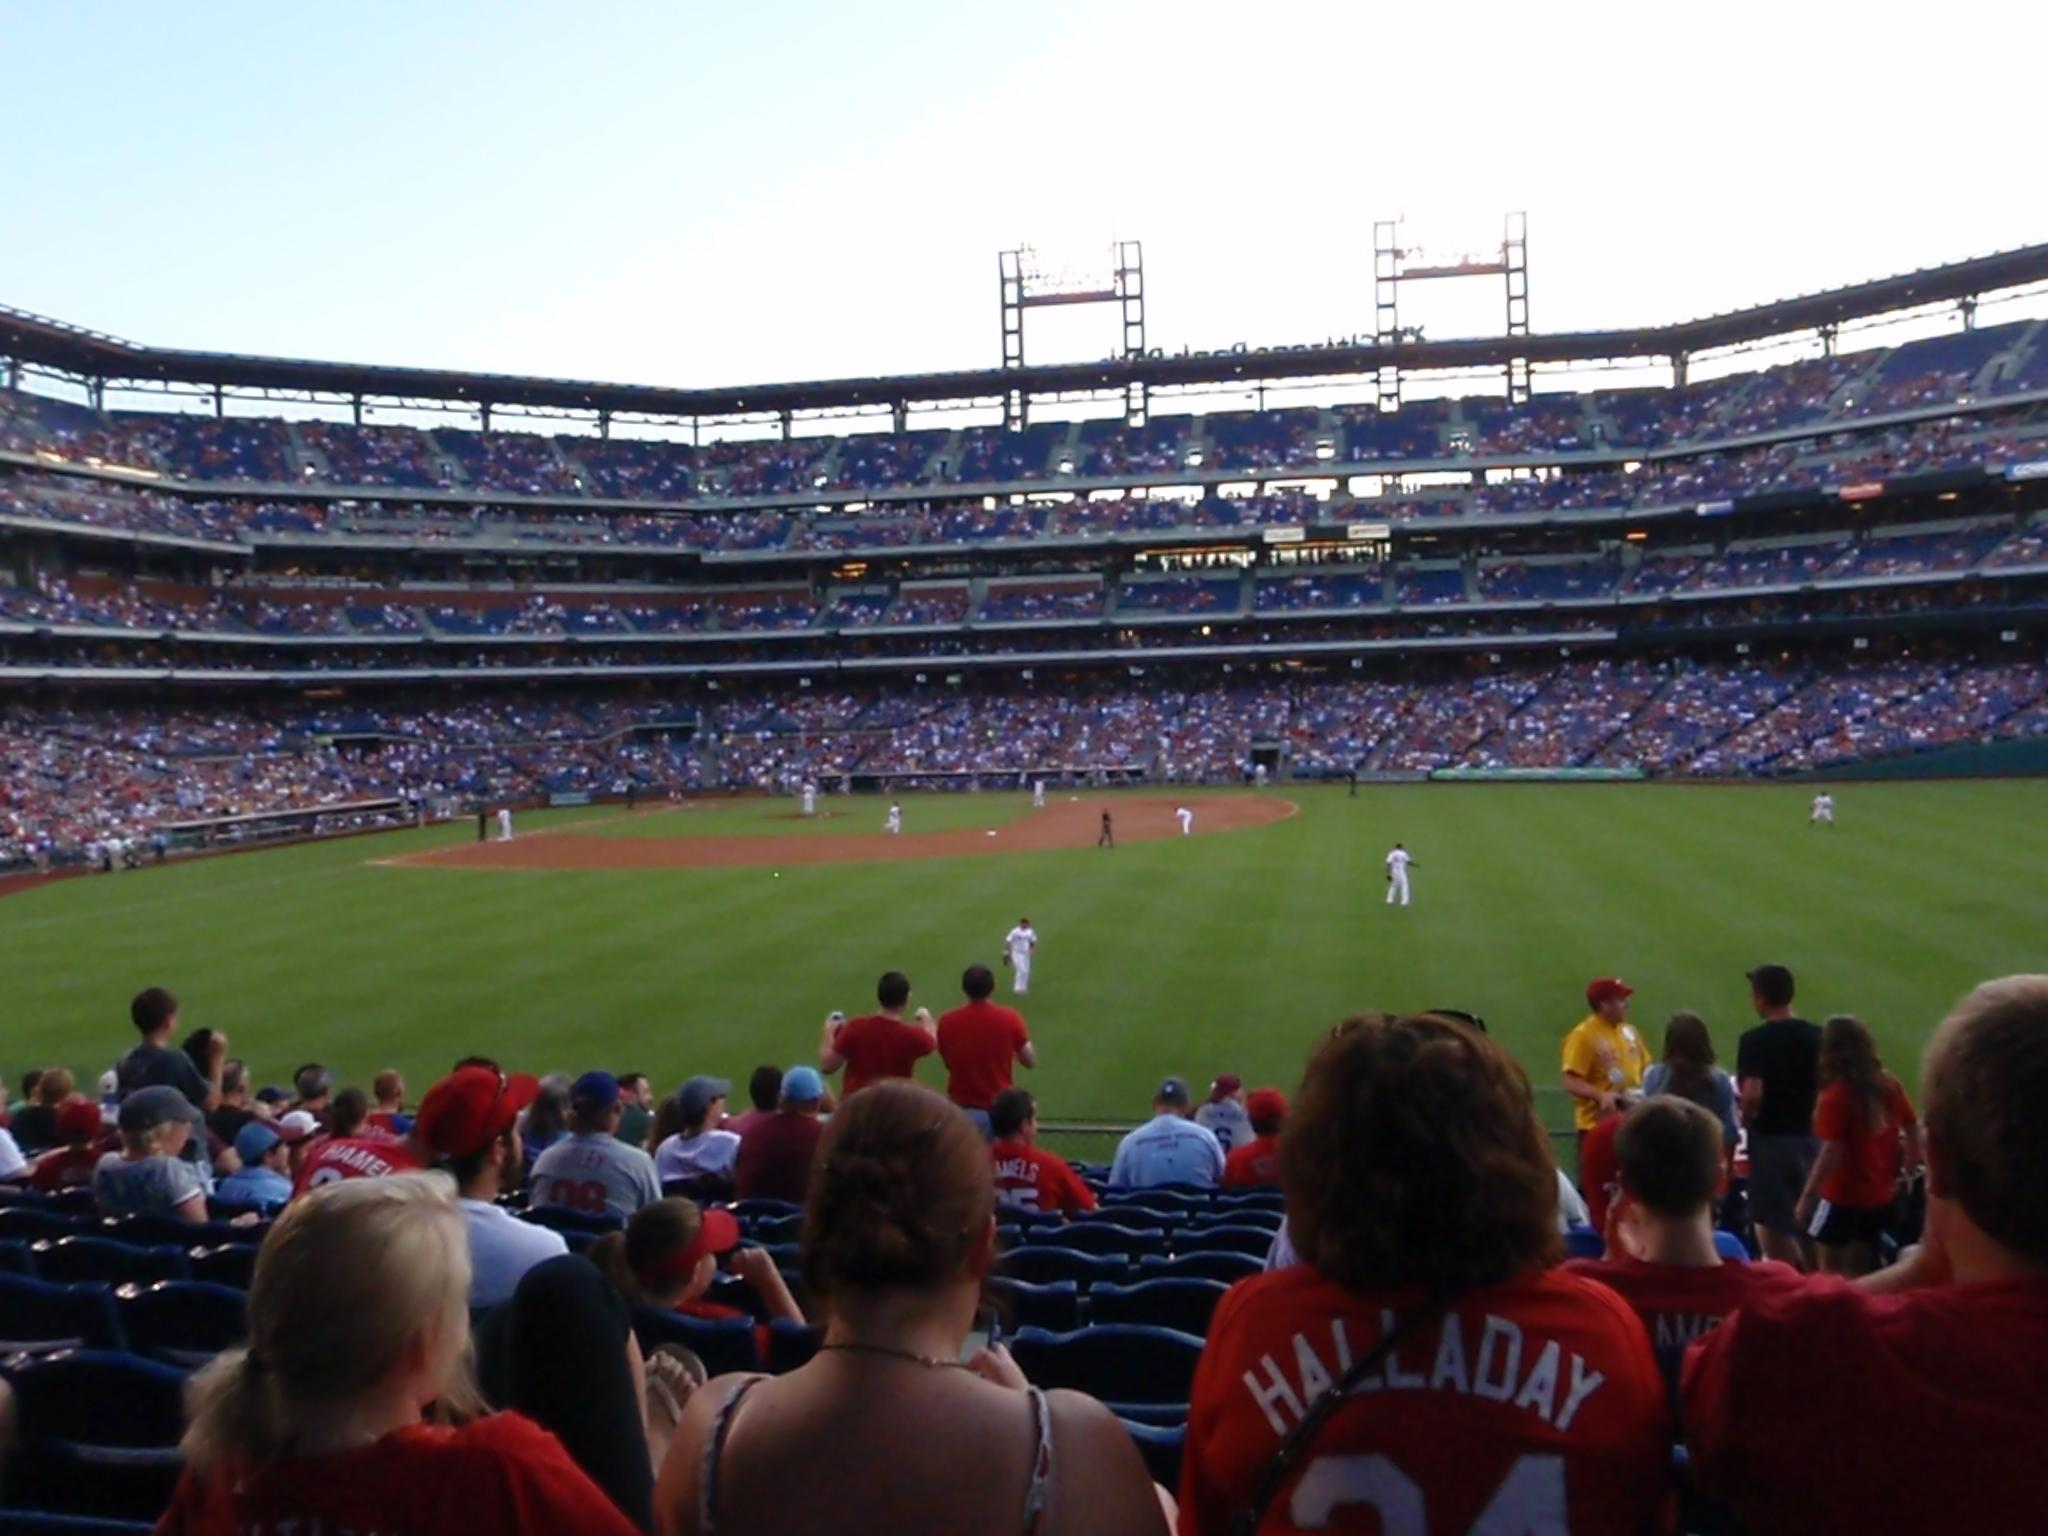 Citizens Bank Park section 103 row 14 seat 2 ...